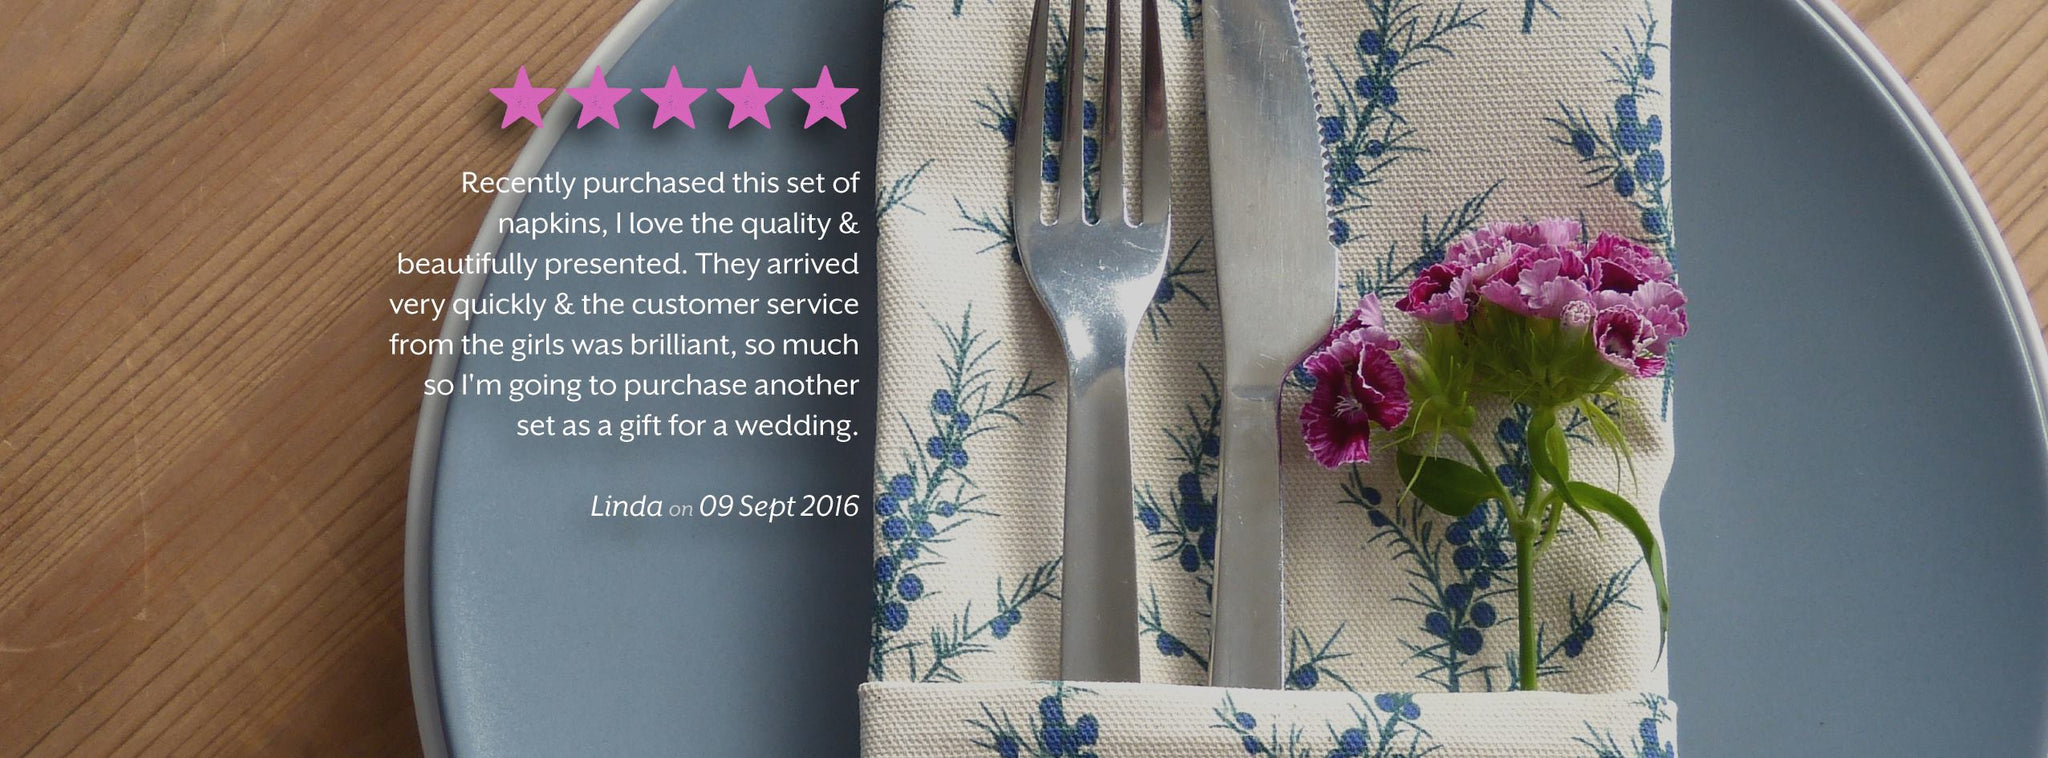 5 Star Review for our Cotton Napkins